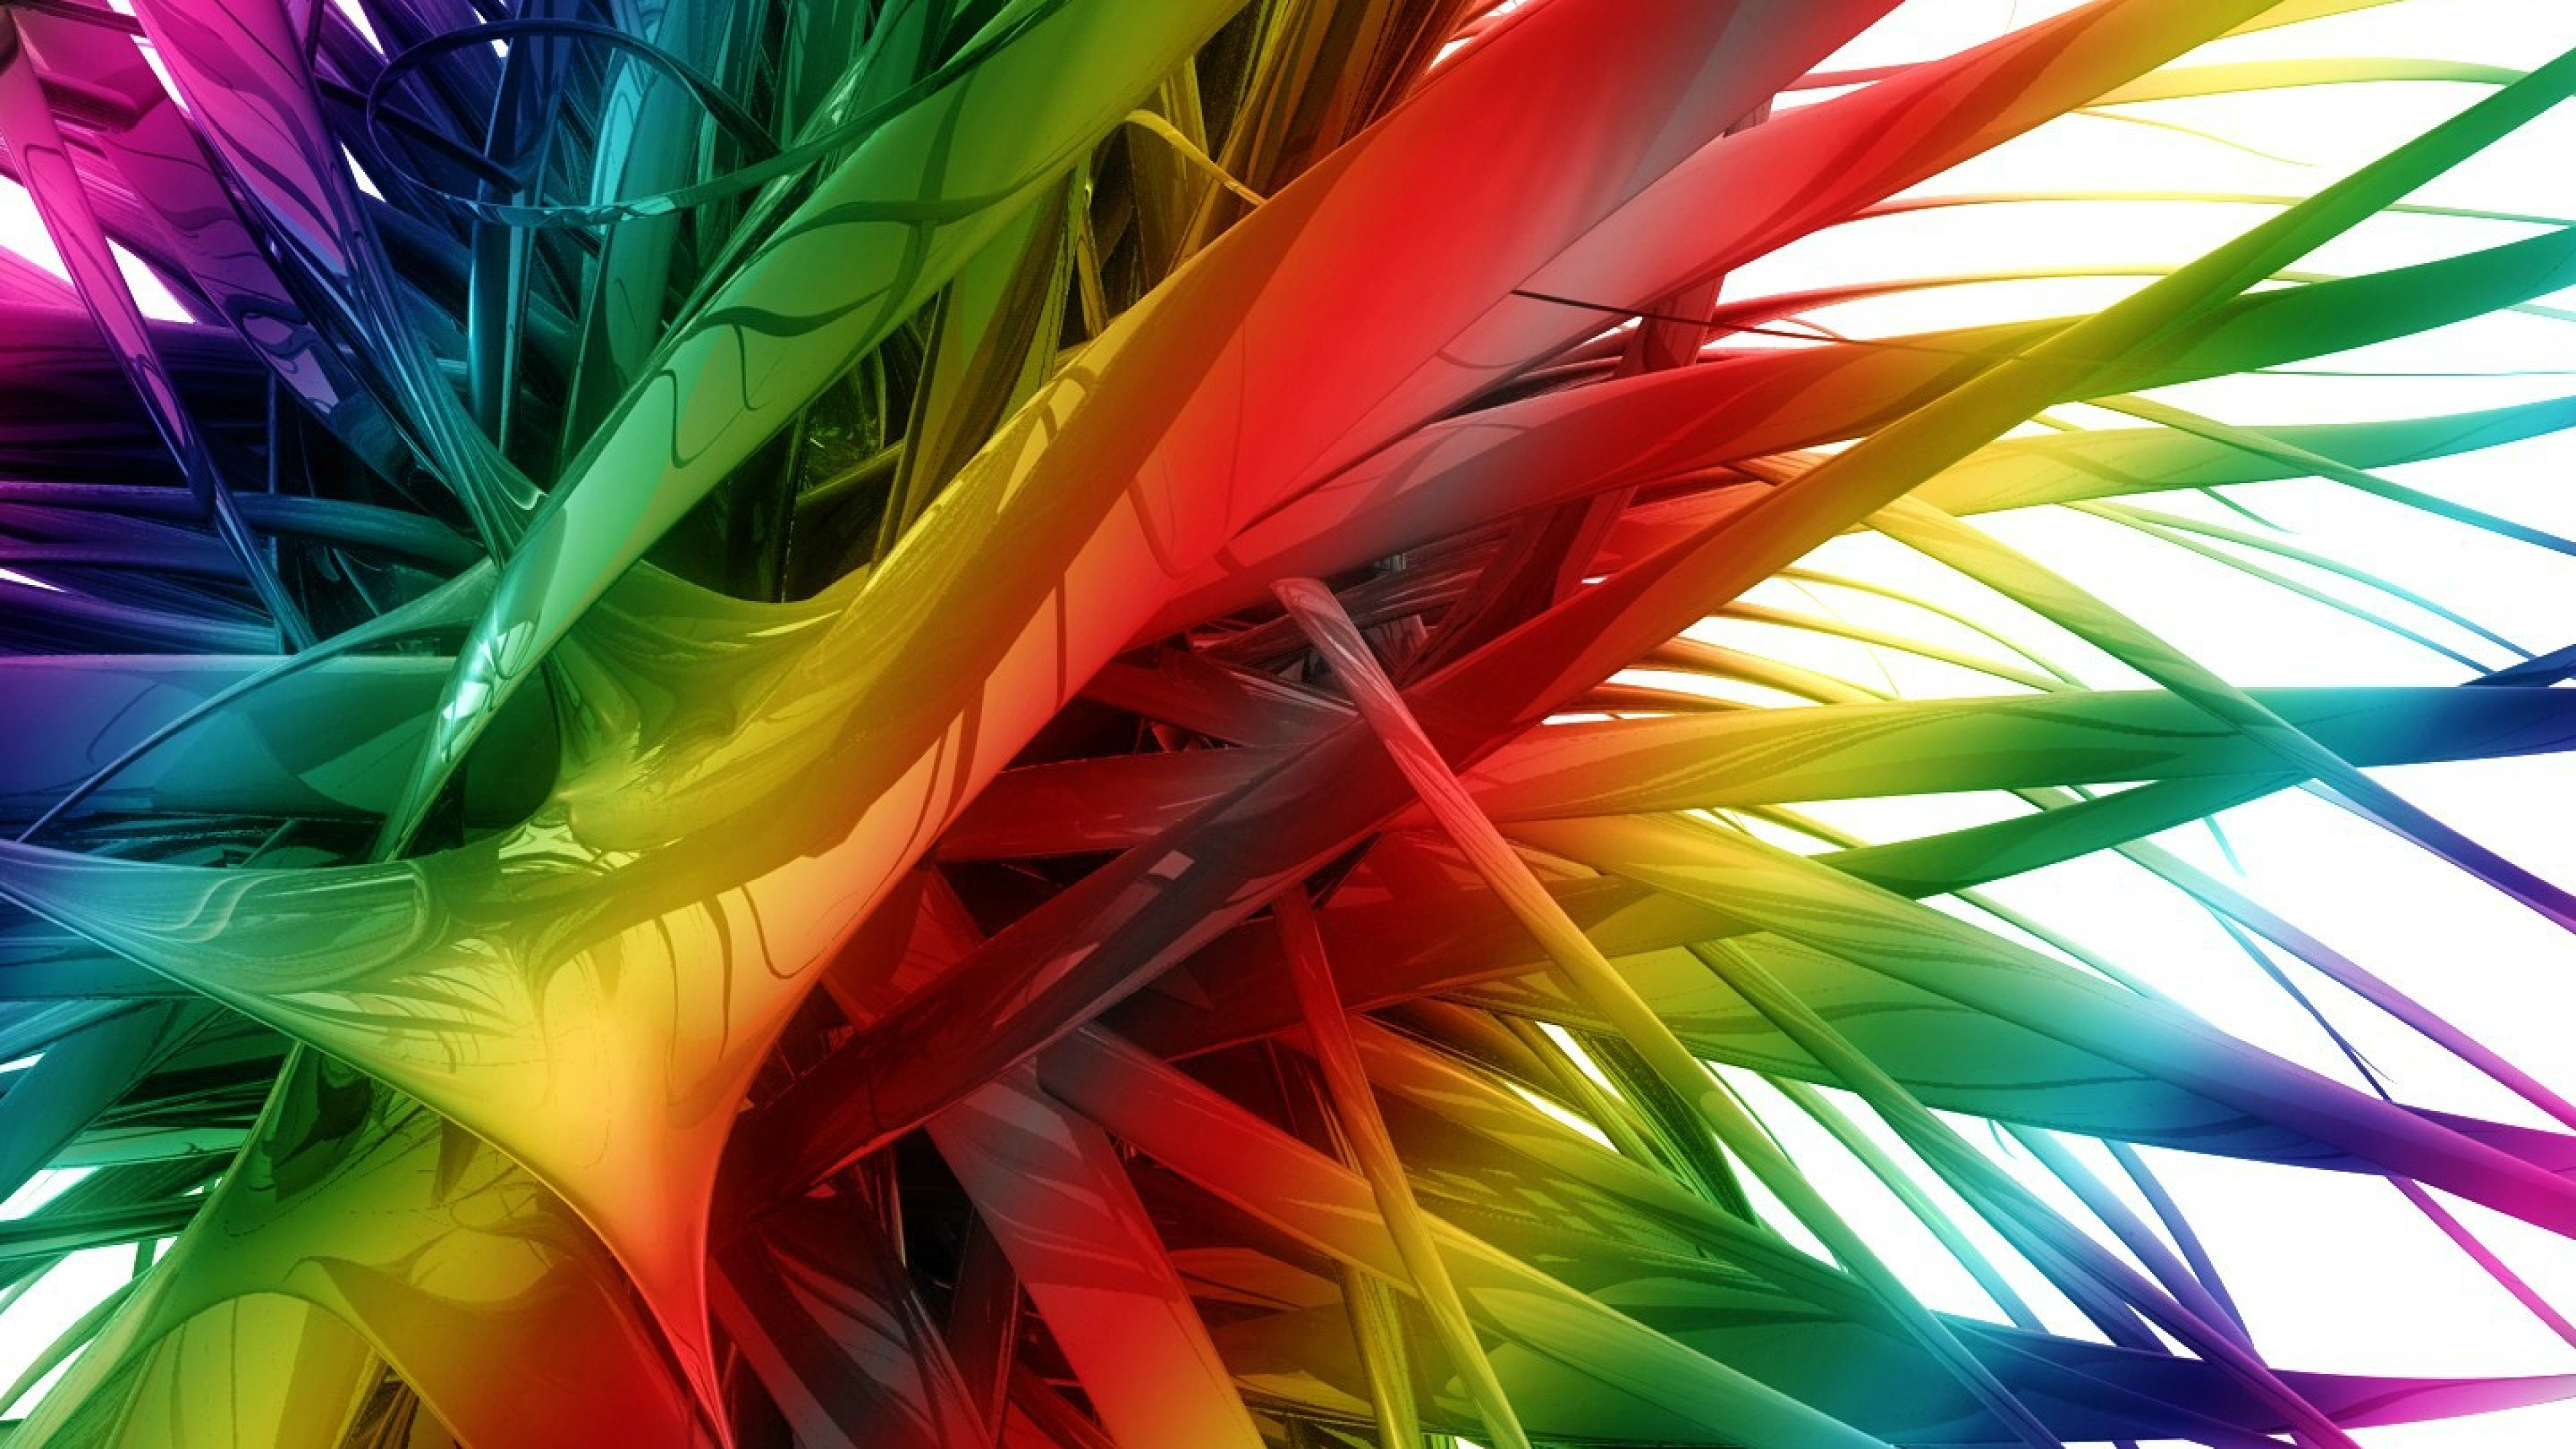 Spikes Coloured Wallpaper For Desktop And Mobiles 4k Ultra Hd Hd